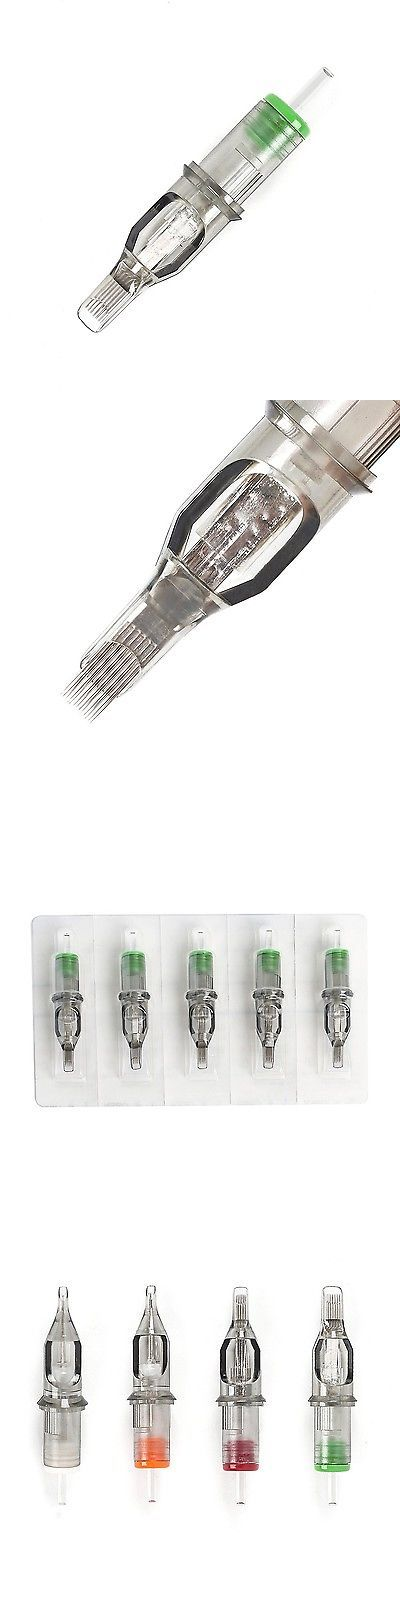 Tattoo Needles Grips and Tips: Eztat2 New Revolution Tattoo Needle Cartridges #12 Regular 11 Magnum Long Tap... -> BUY IT NOW ONLY: $37.97 on eBay!